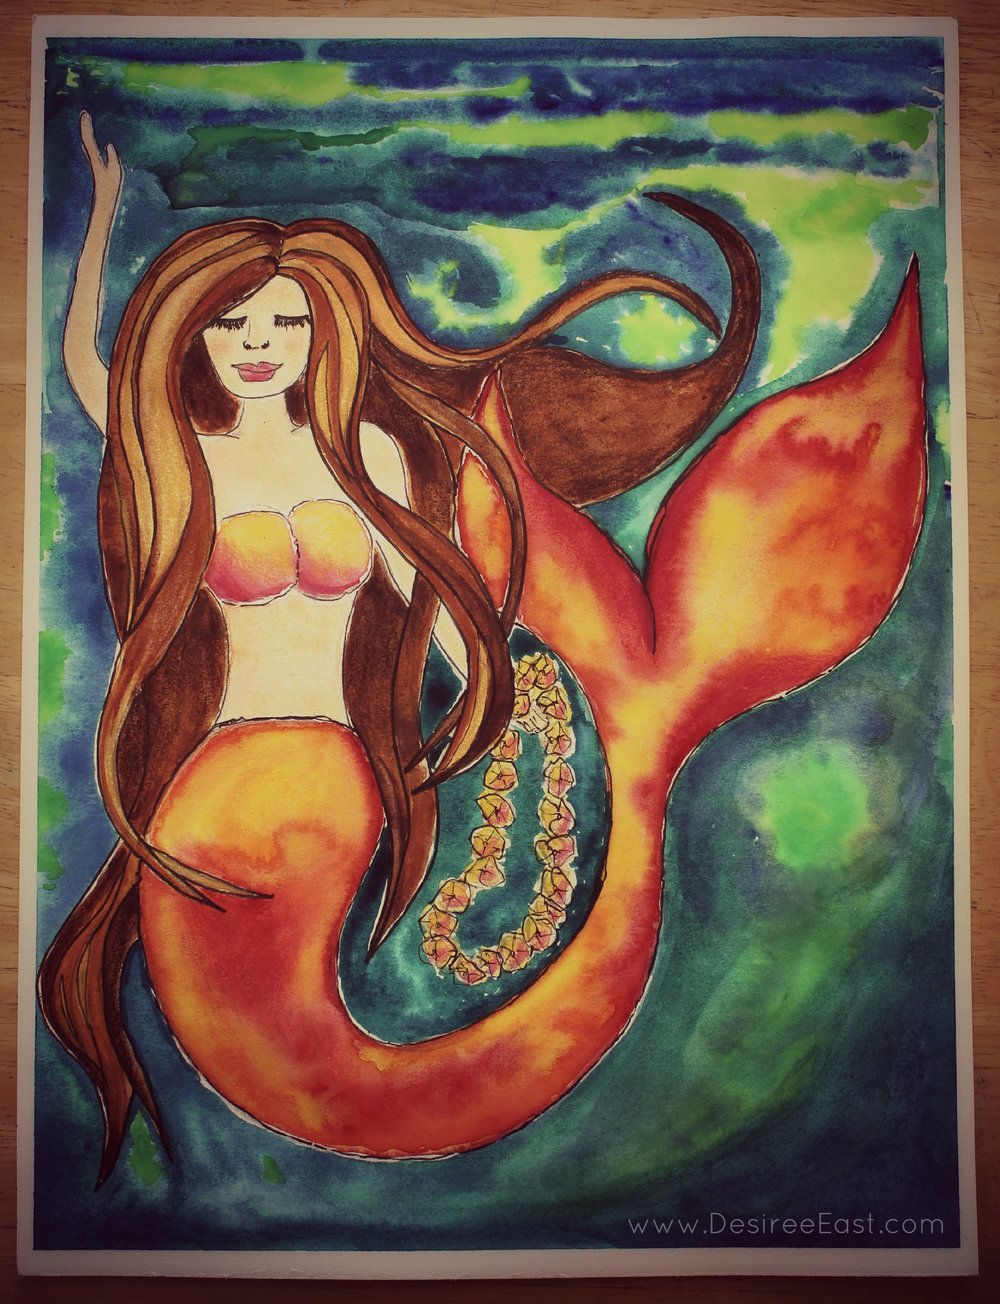 mothers-day-mermaid-by-desiree-east.jpg